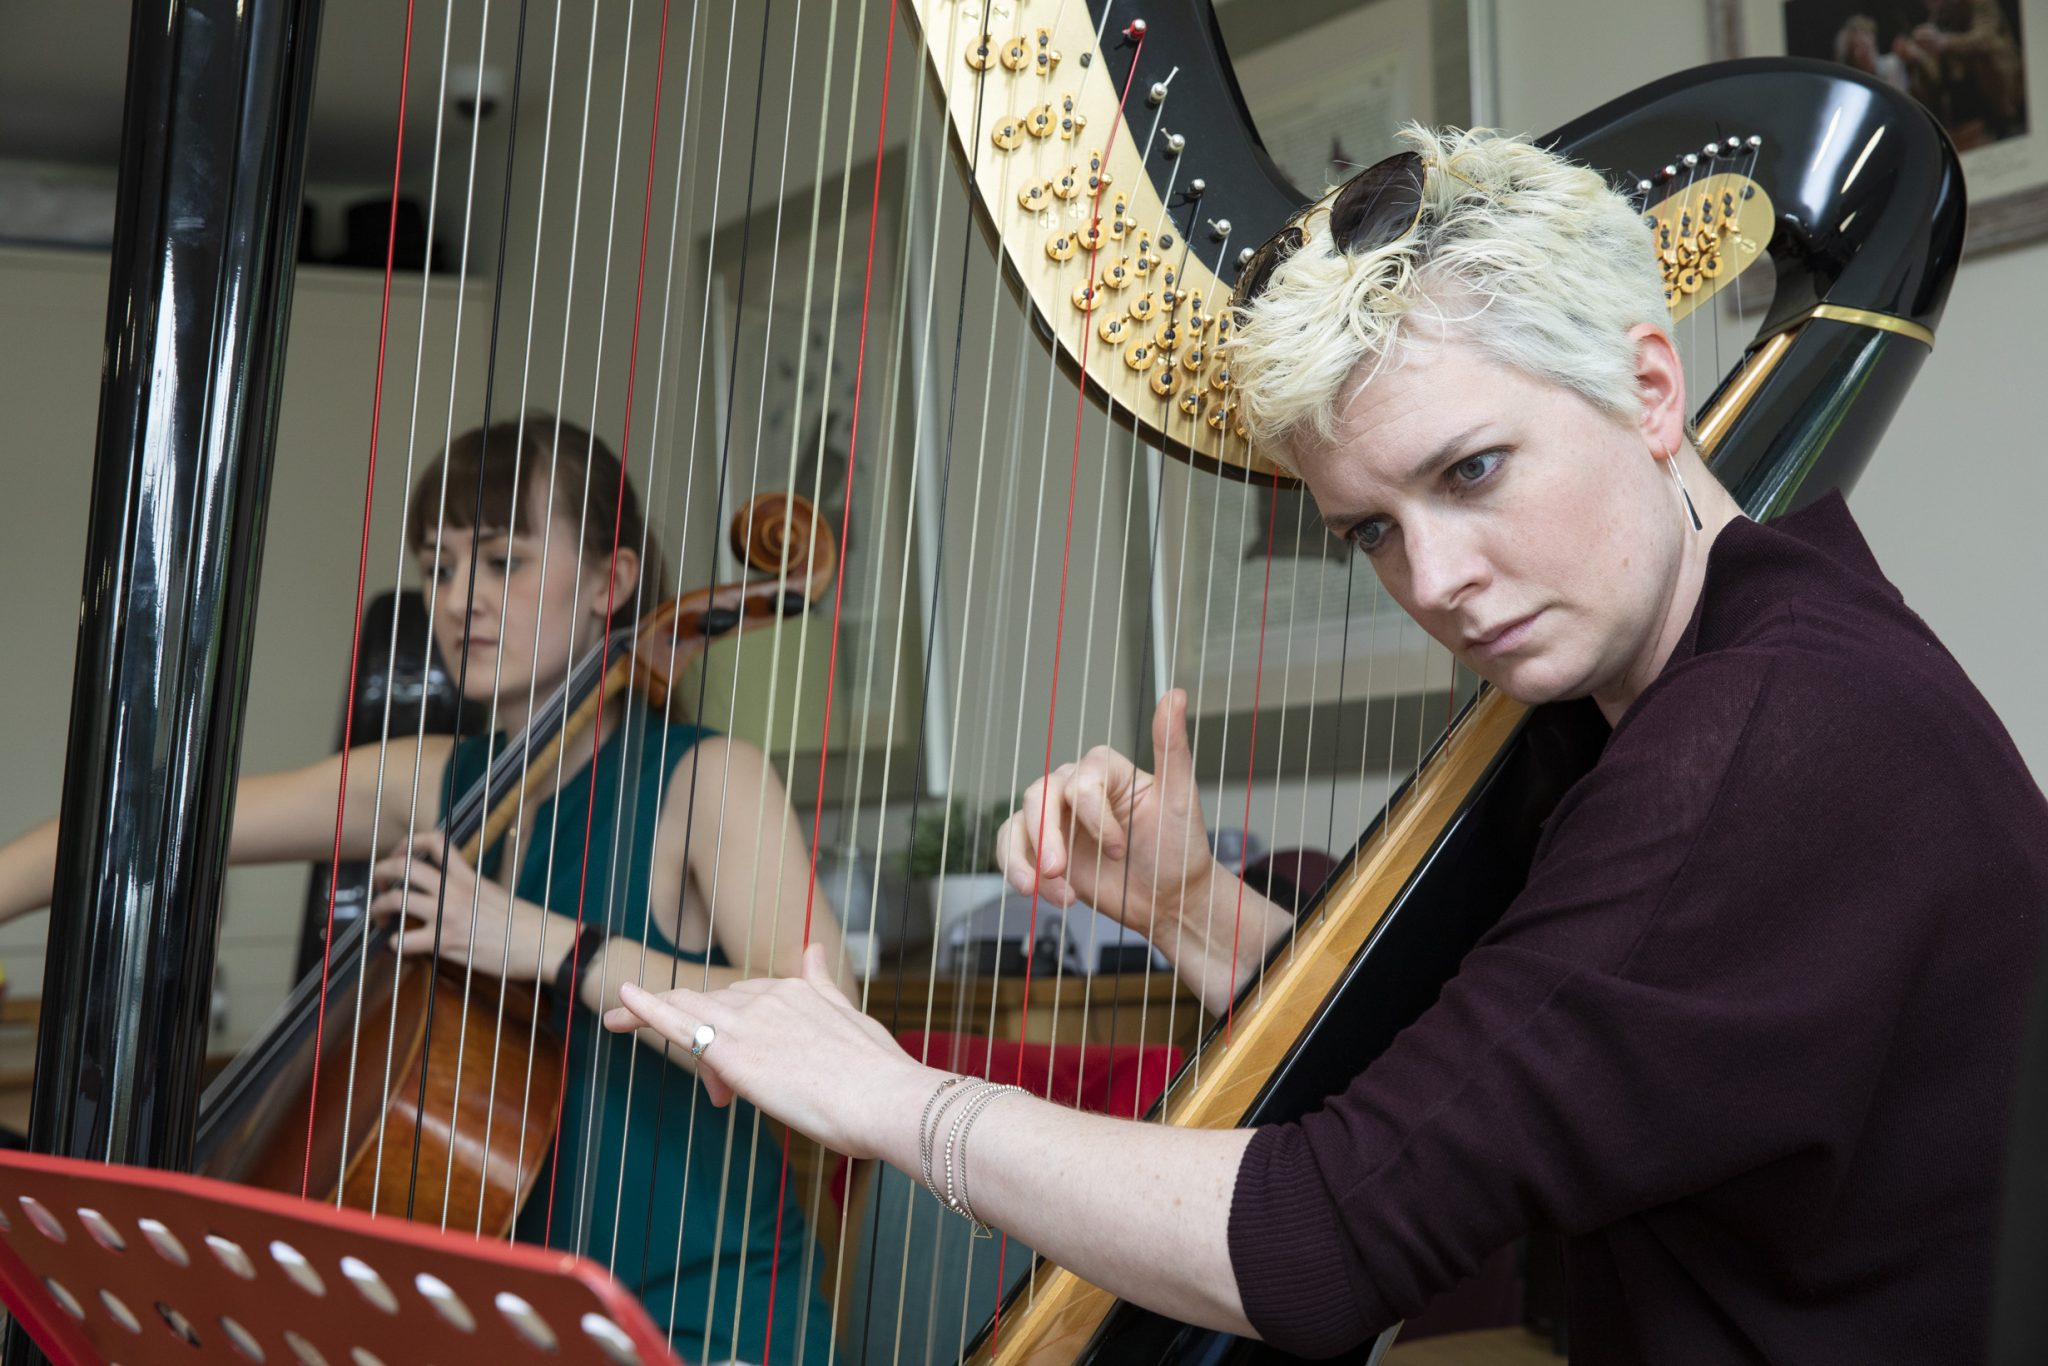 Dream comes true for young cellist Elin at Bryn Seiont Newydd